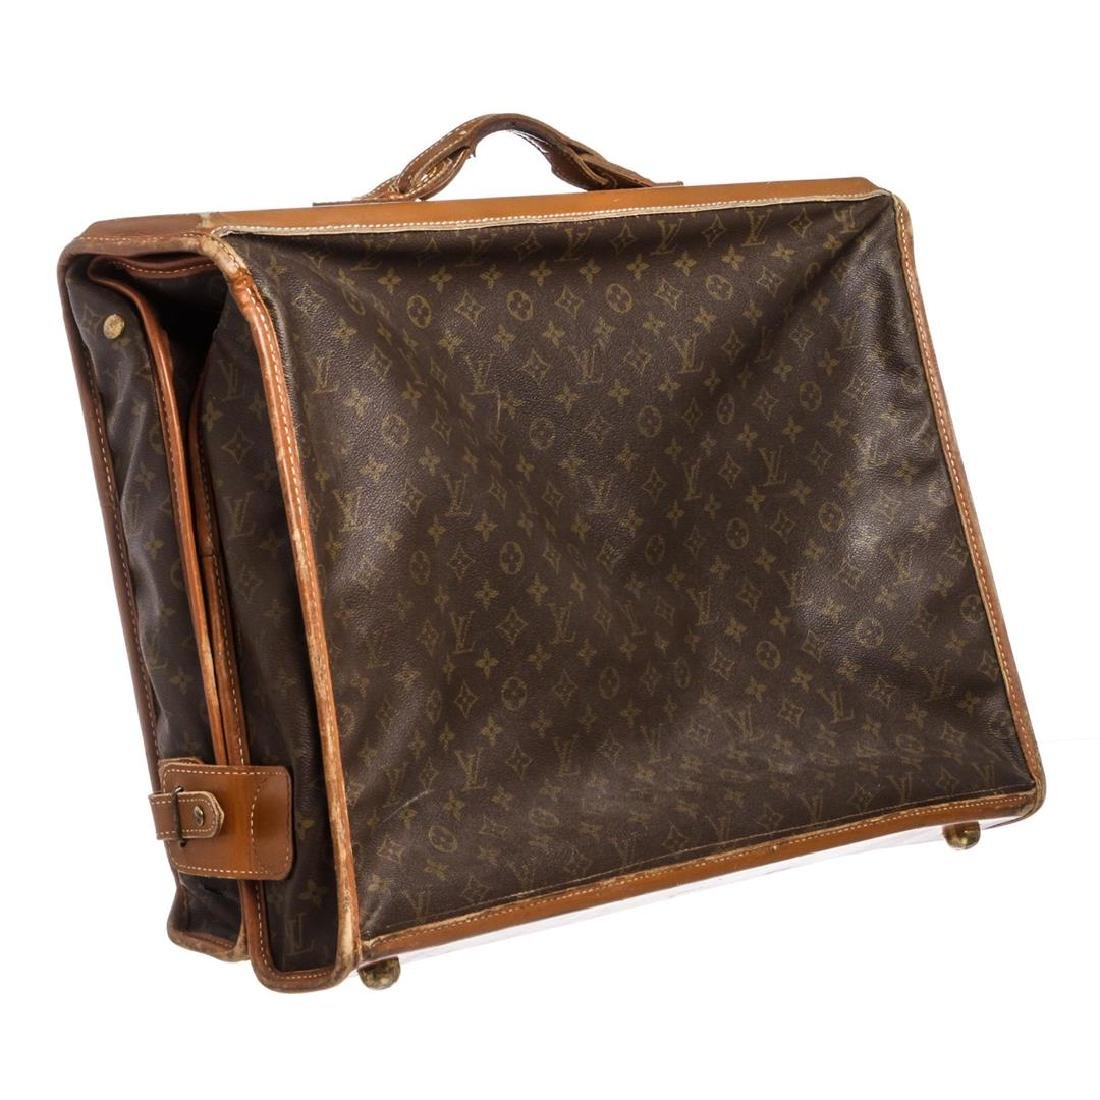 Louis Vuitton Monogram Canvas Leather Vintage Garment - 2